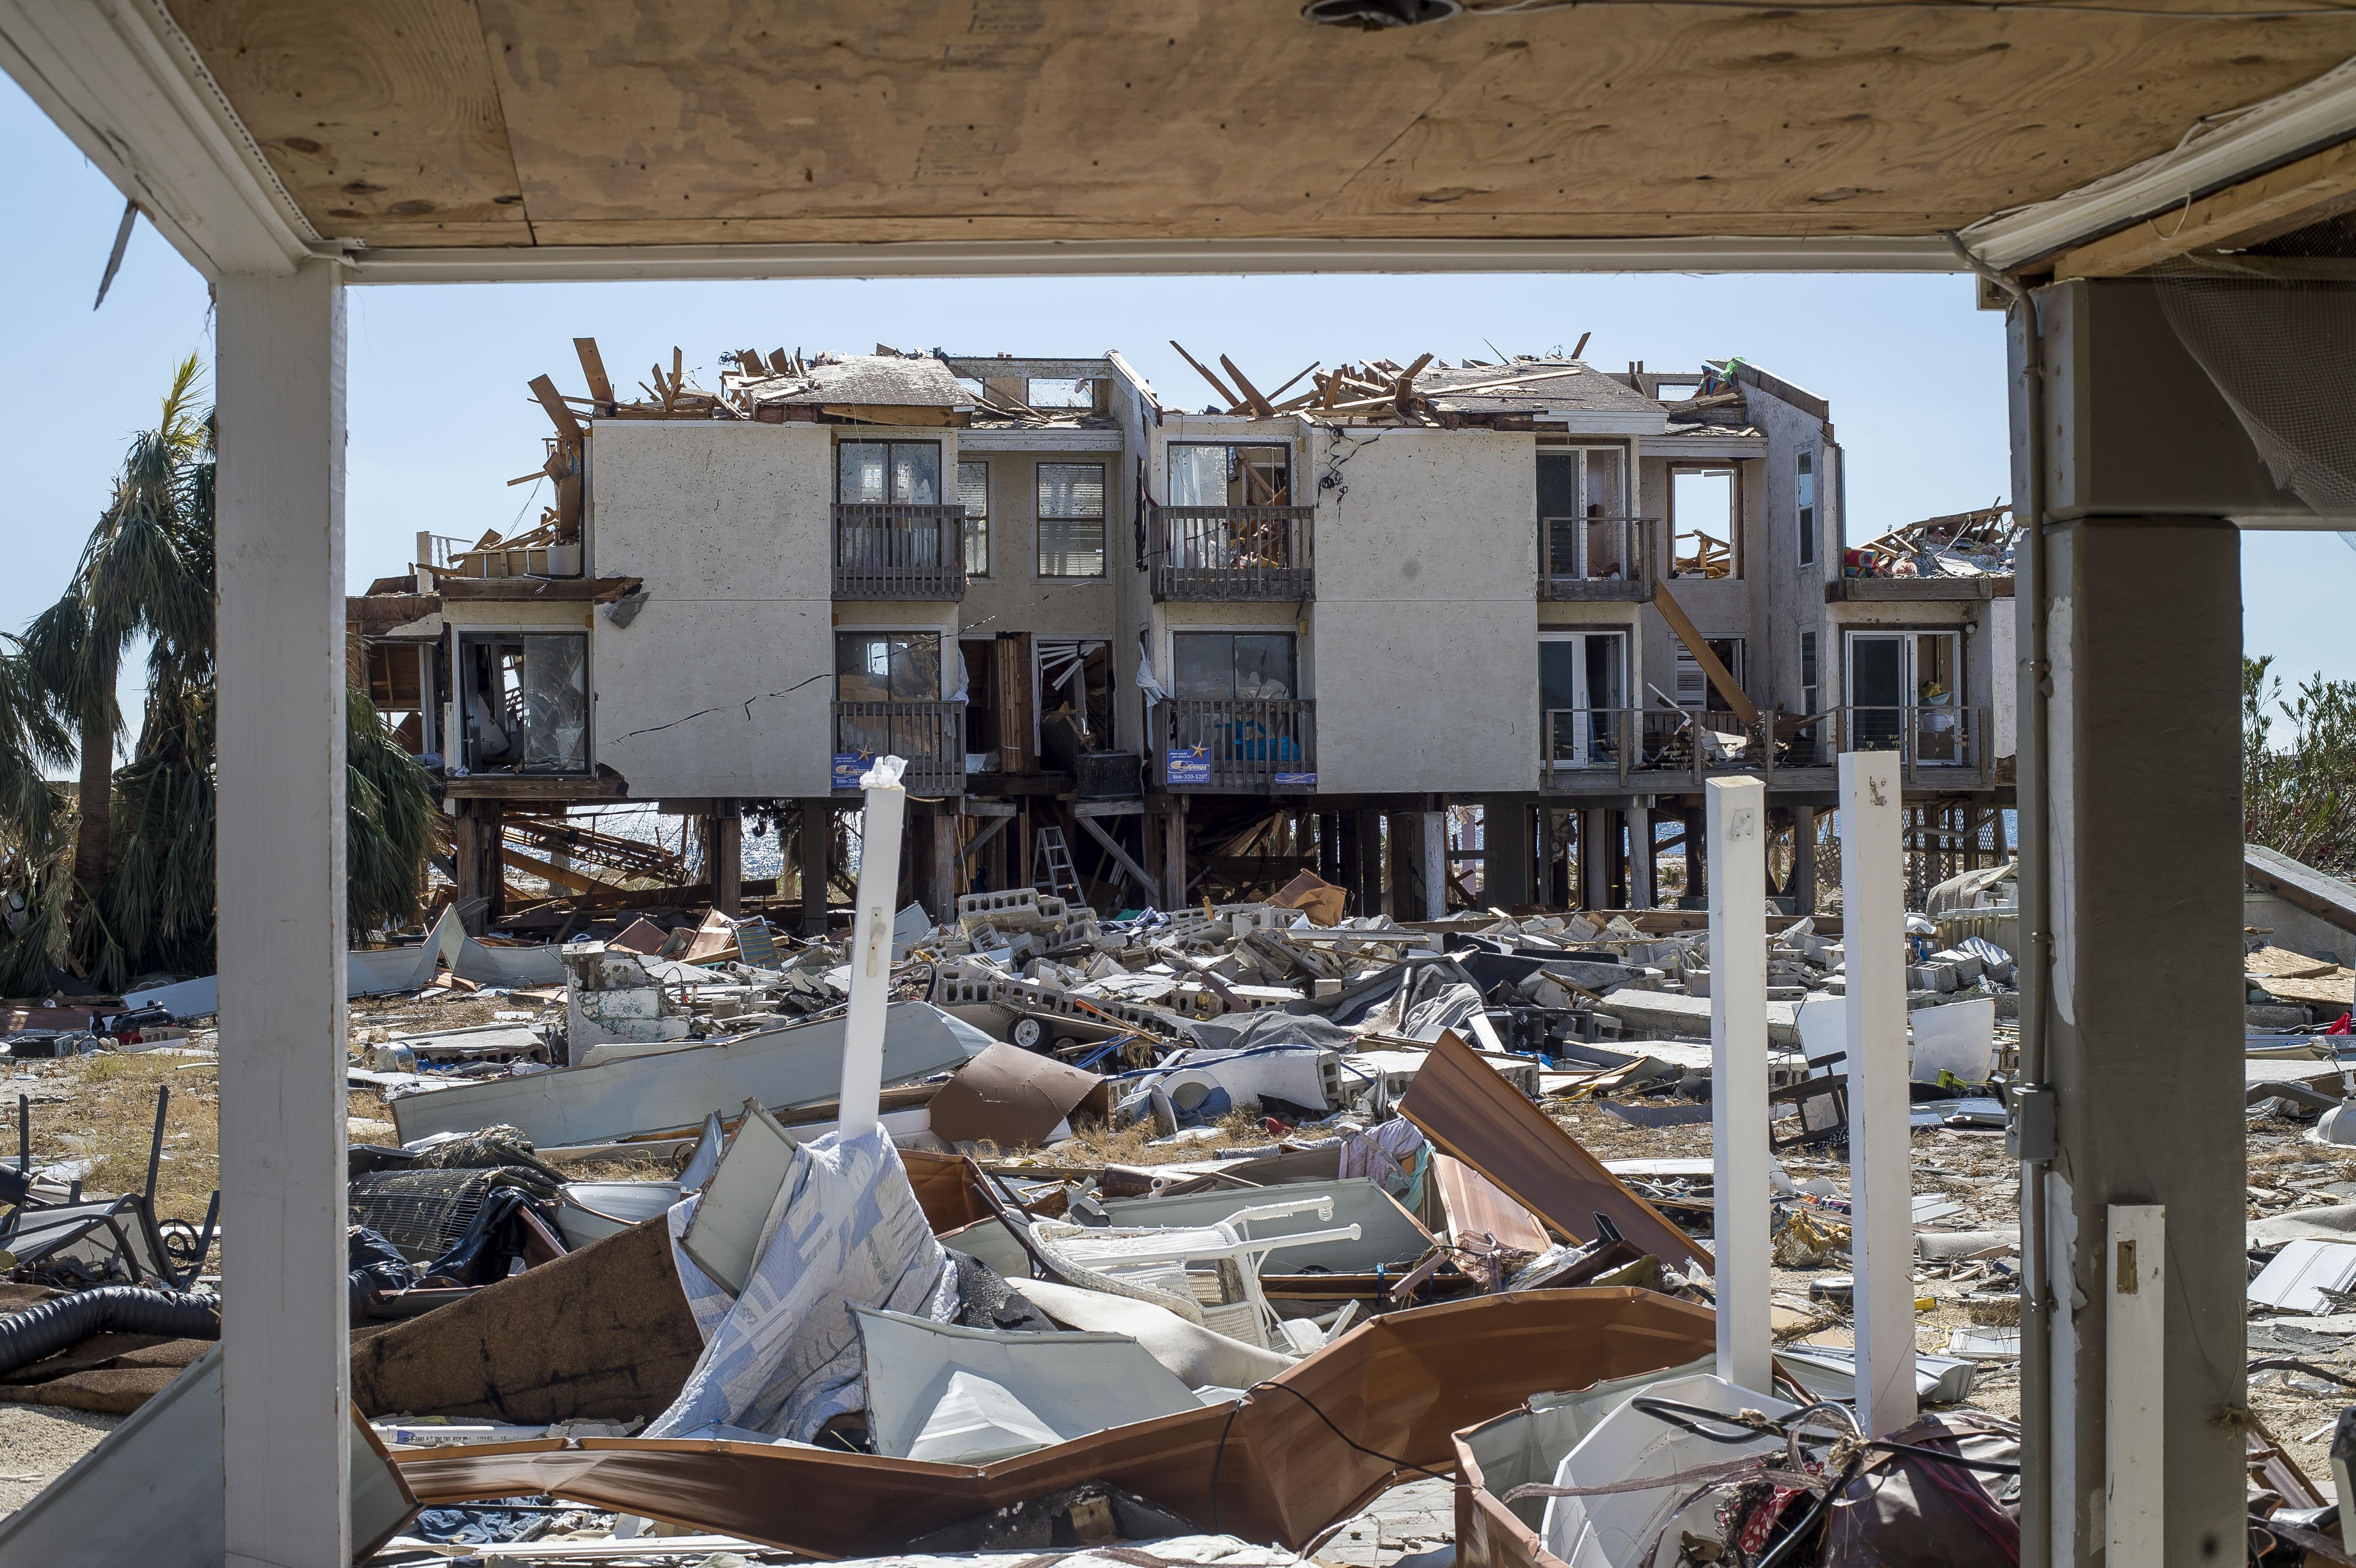 Mexico Beach, Florida, was demolished by Hurricane Michael's impact in the Florida Panhandle. Many in the region are still displaced from the storm, and health centers and free clinics in Florida's Panhandle are working to regroup and continue serving patients. Direct Relief is issuing $250,000 for emergency costs to support their efforts. (Photo by Zack Wittman for Direct Relief)